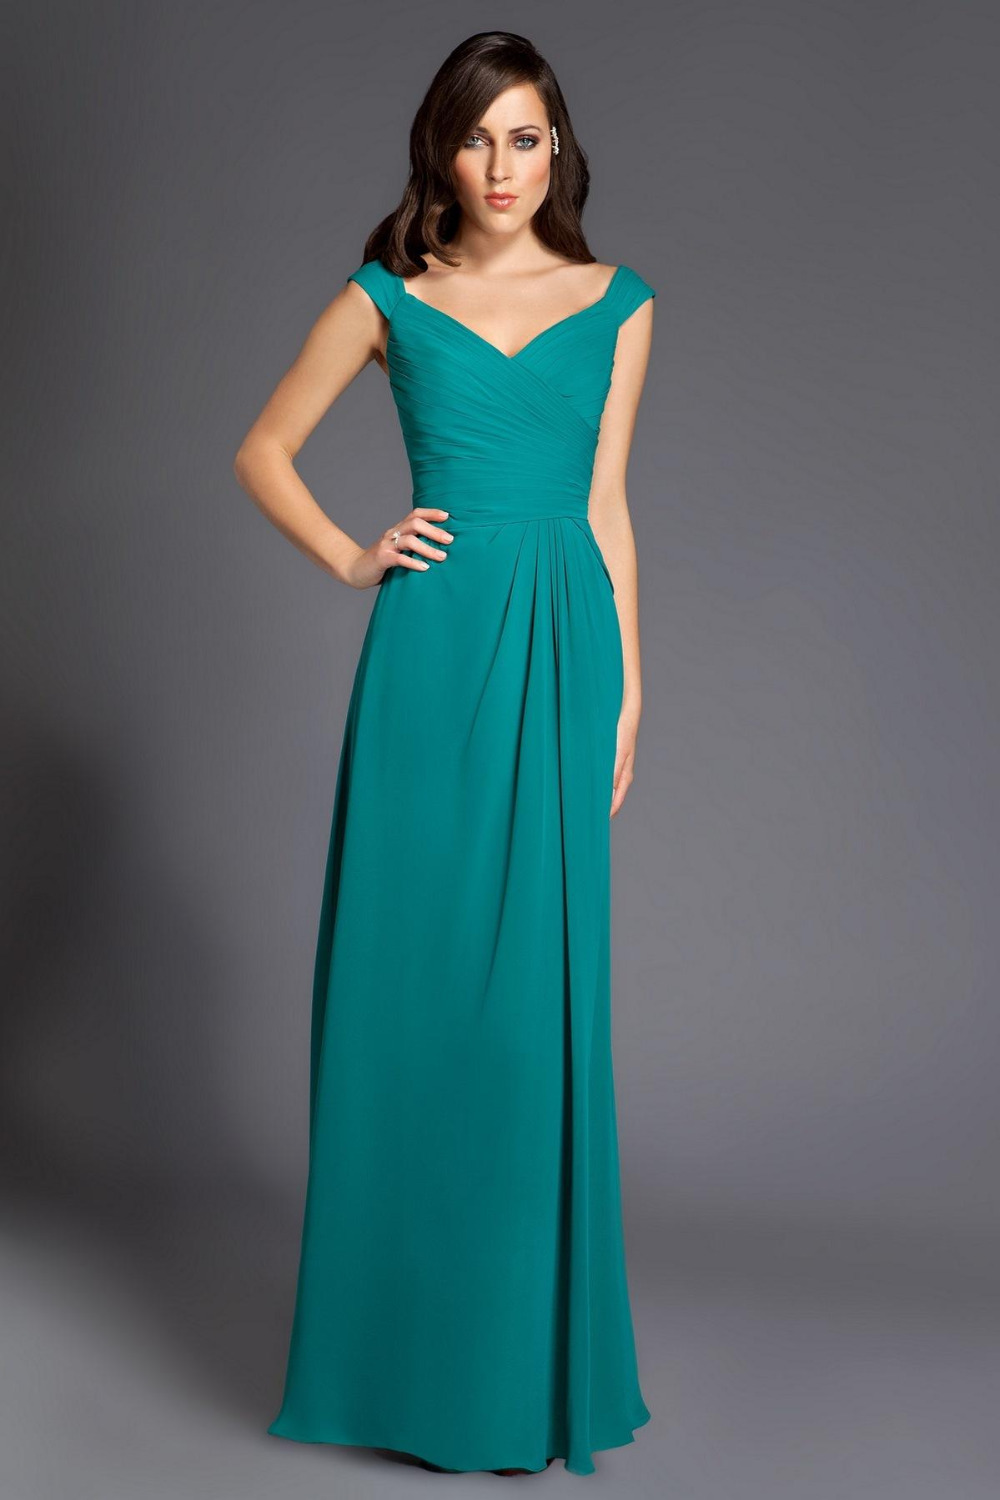 Luxury wedding dresses for young: Mint turquoise bridesmaid dresses